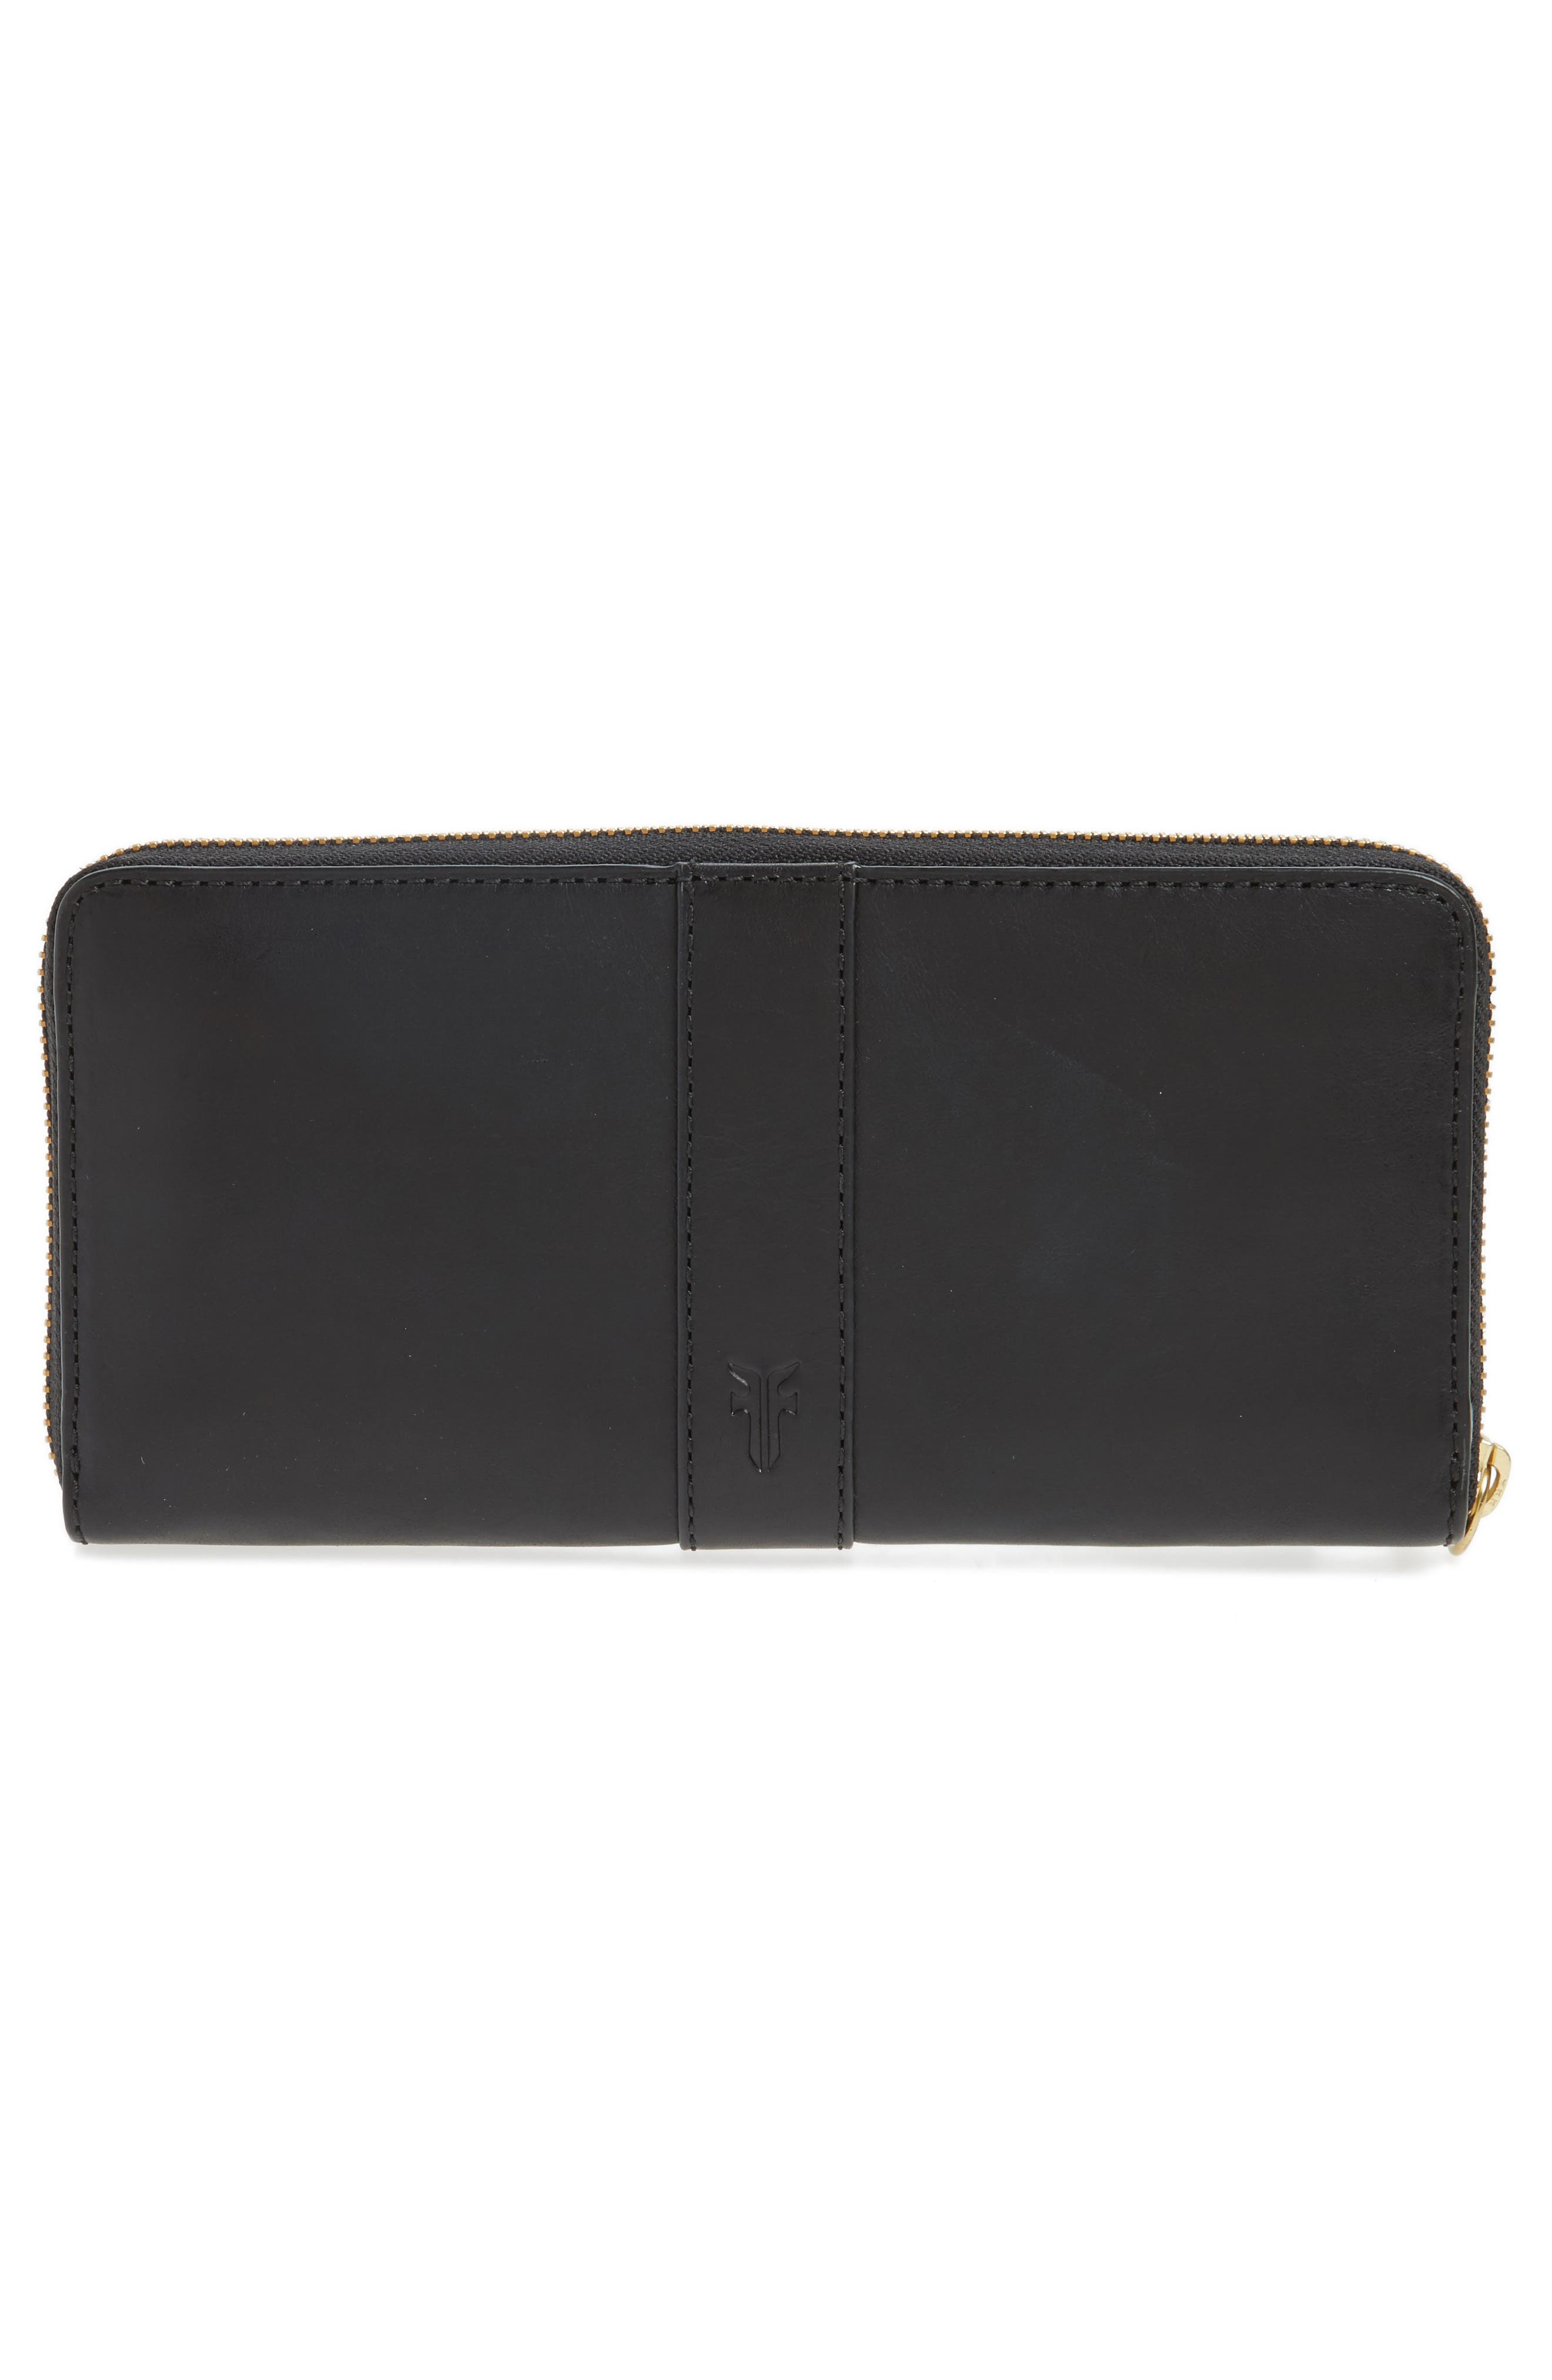 Ilana Harness Leather Zip Wallet,                             Alternate thumbnail 3, color,                             001